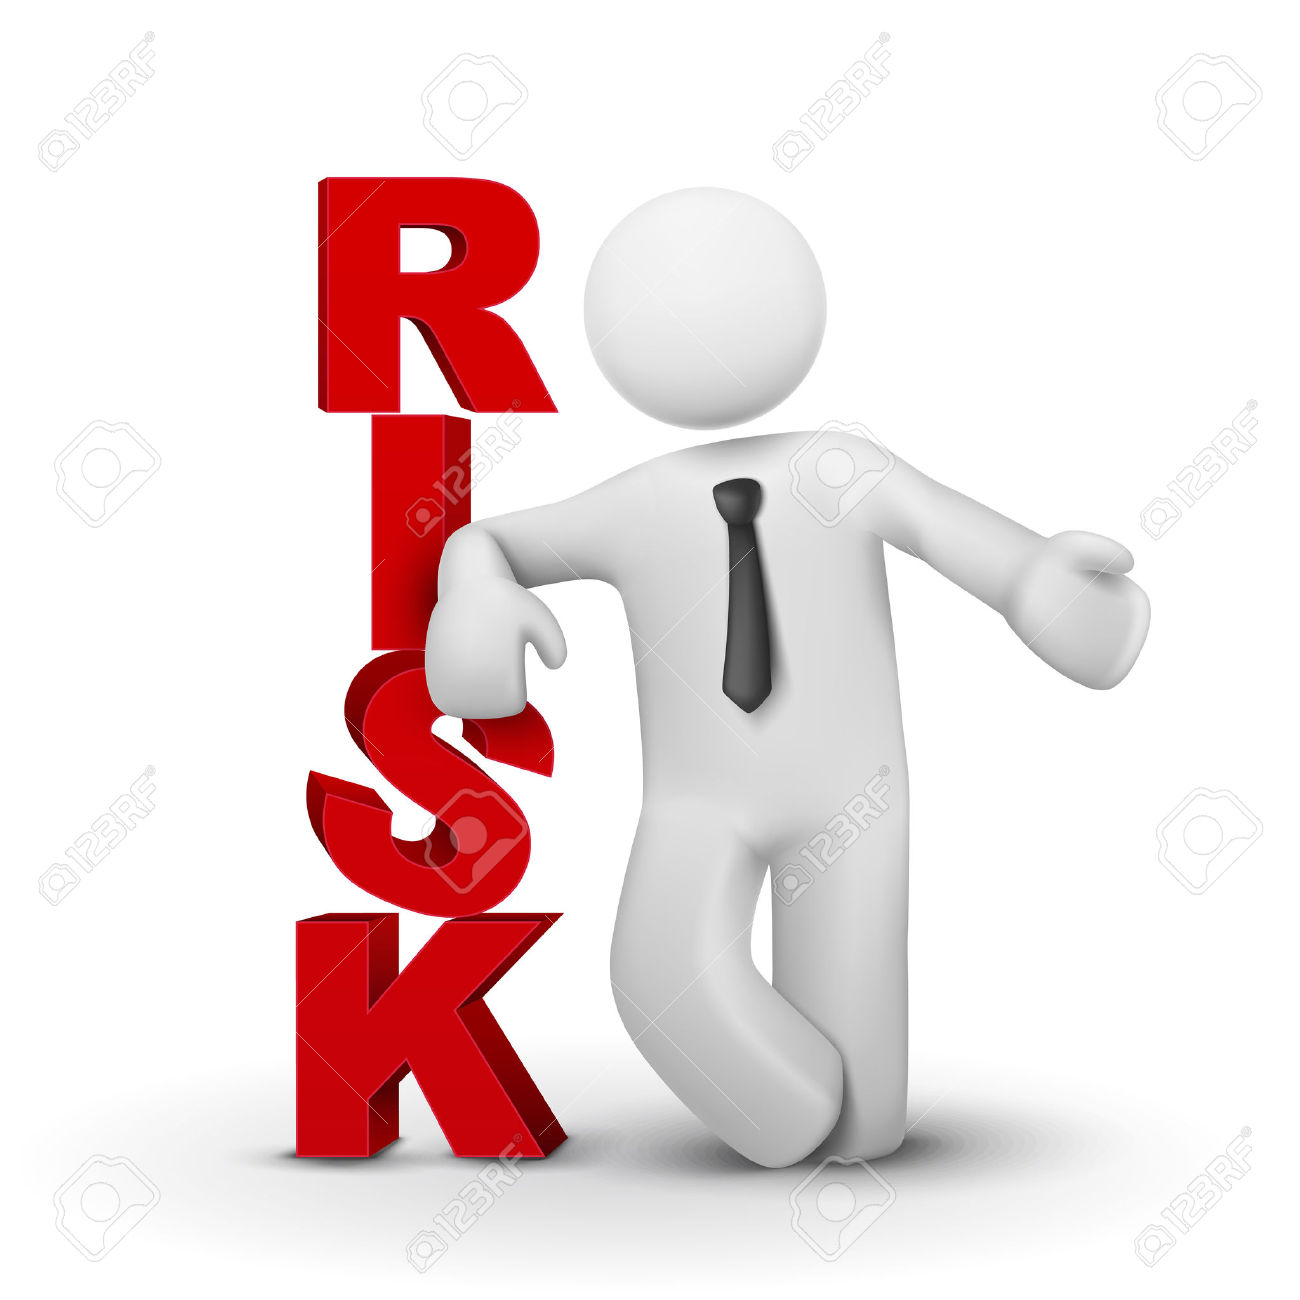 risk clipart - photo #14